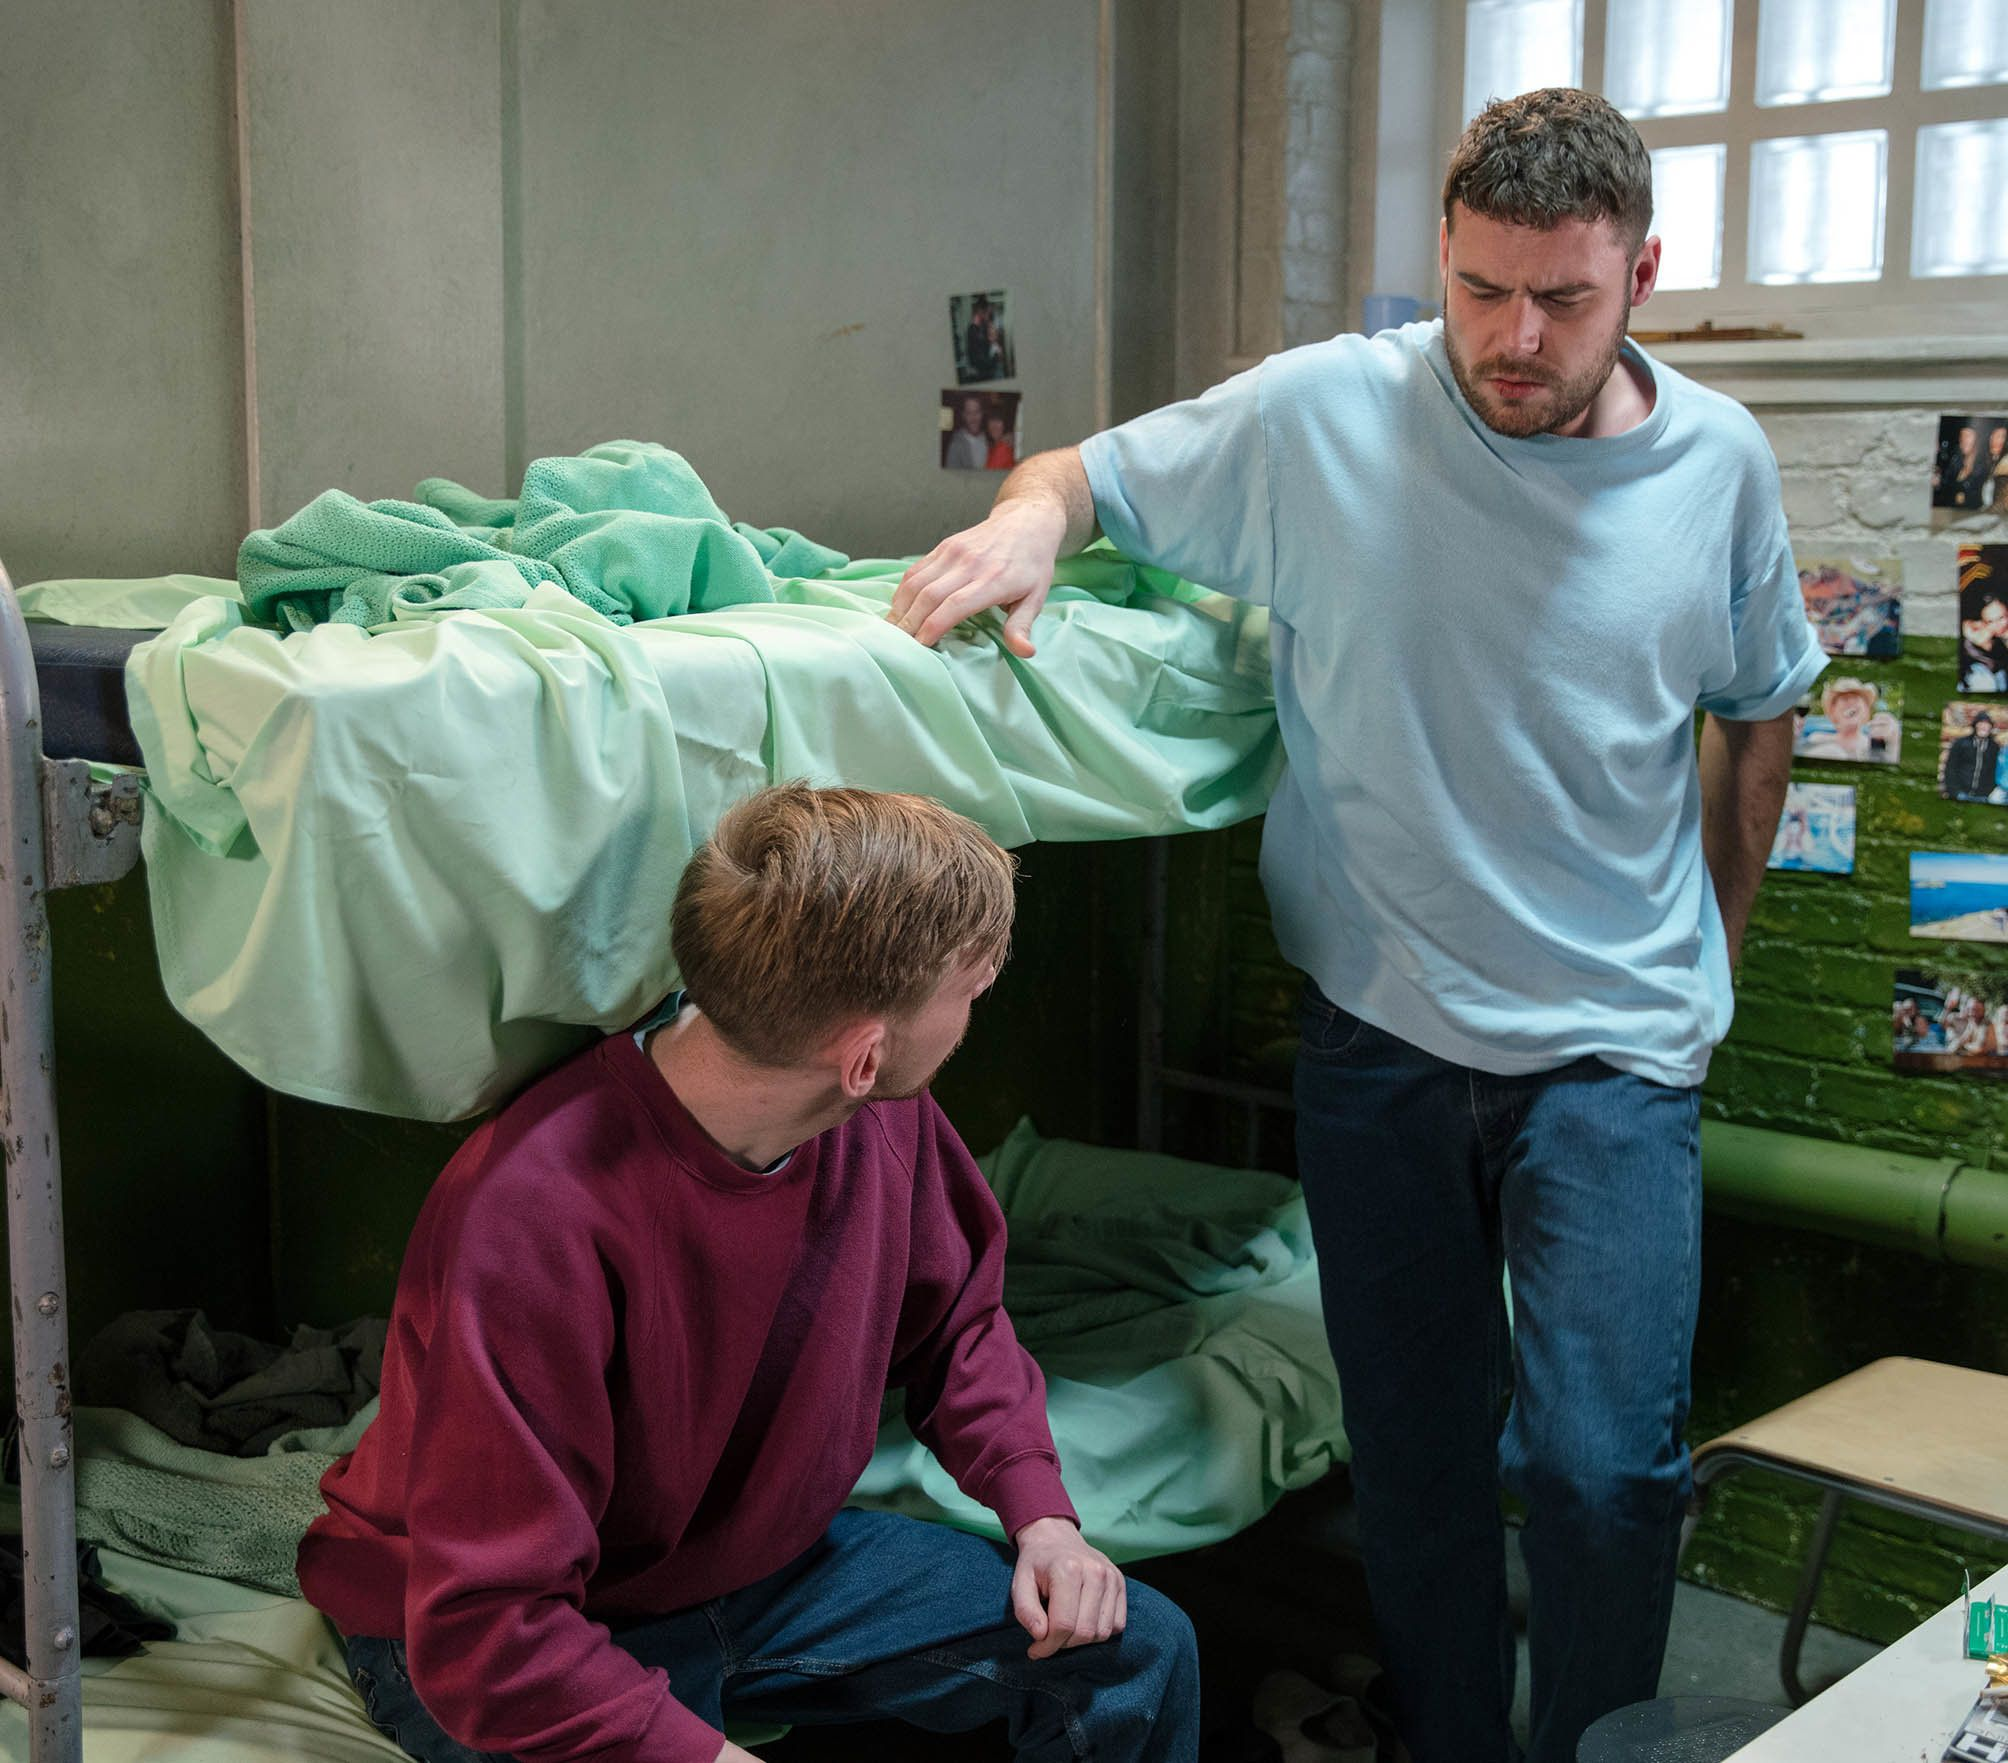 'Emmerdale' Spoiler! Aaron Dingle's Prison Storyline Could Be About To Take A Seriously Dark